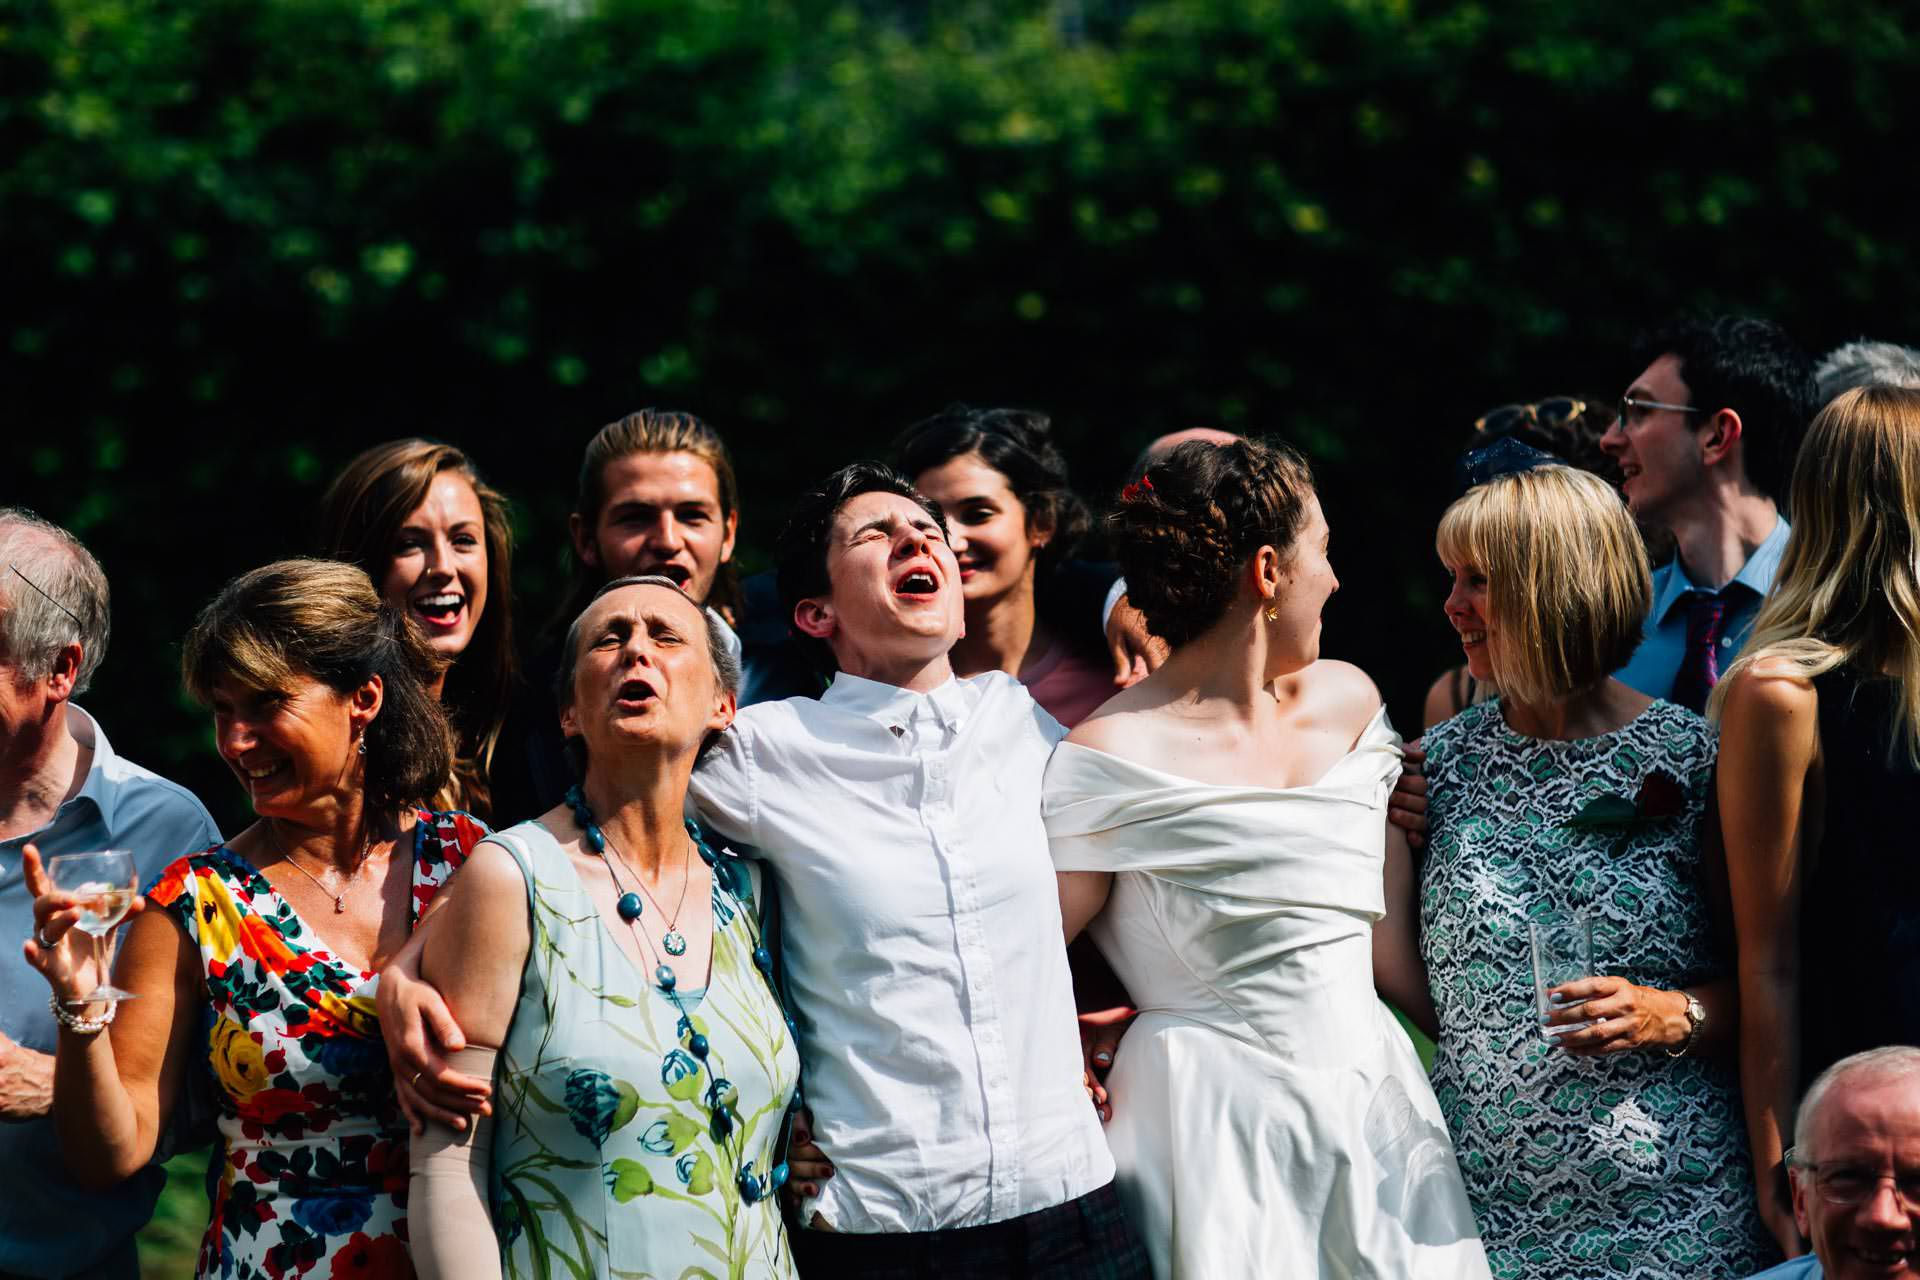 Best wedding photography 2016 - group shot of laughing guests